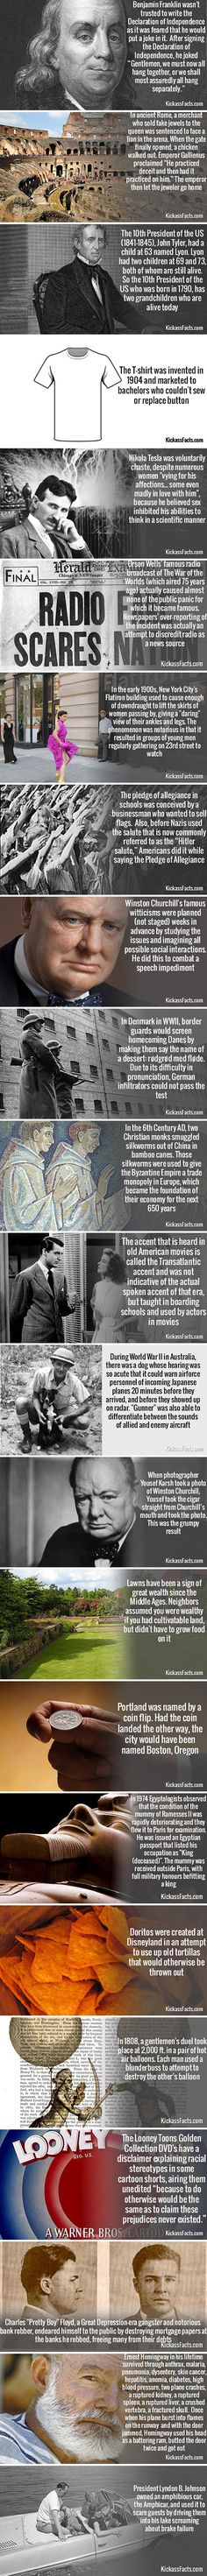 Another day, another round of fascinating historical facts you might not have known.